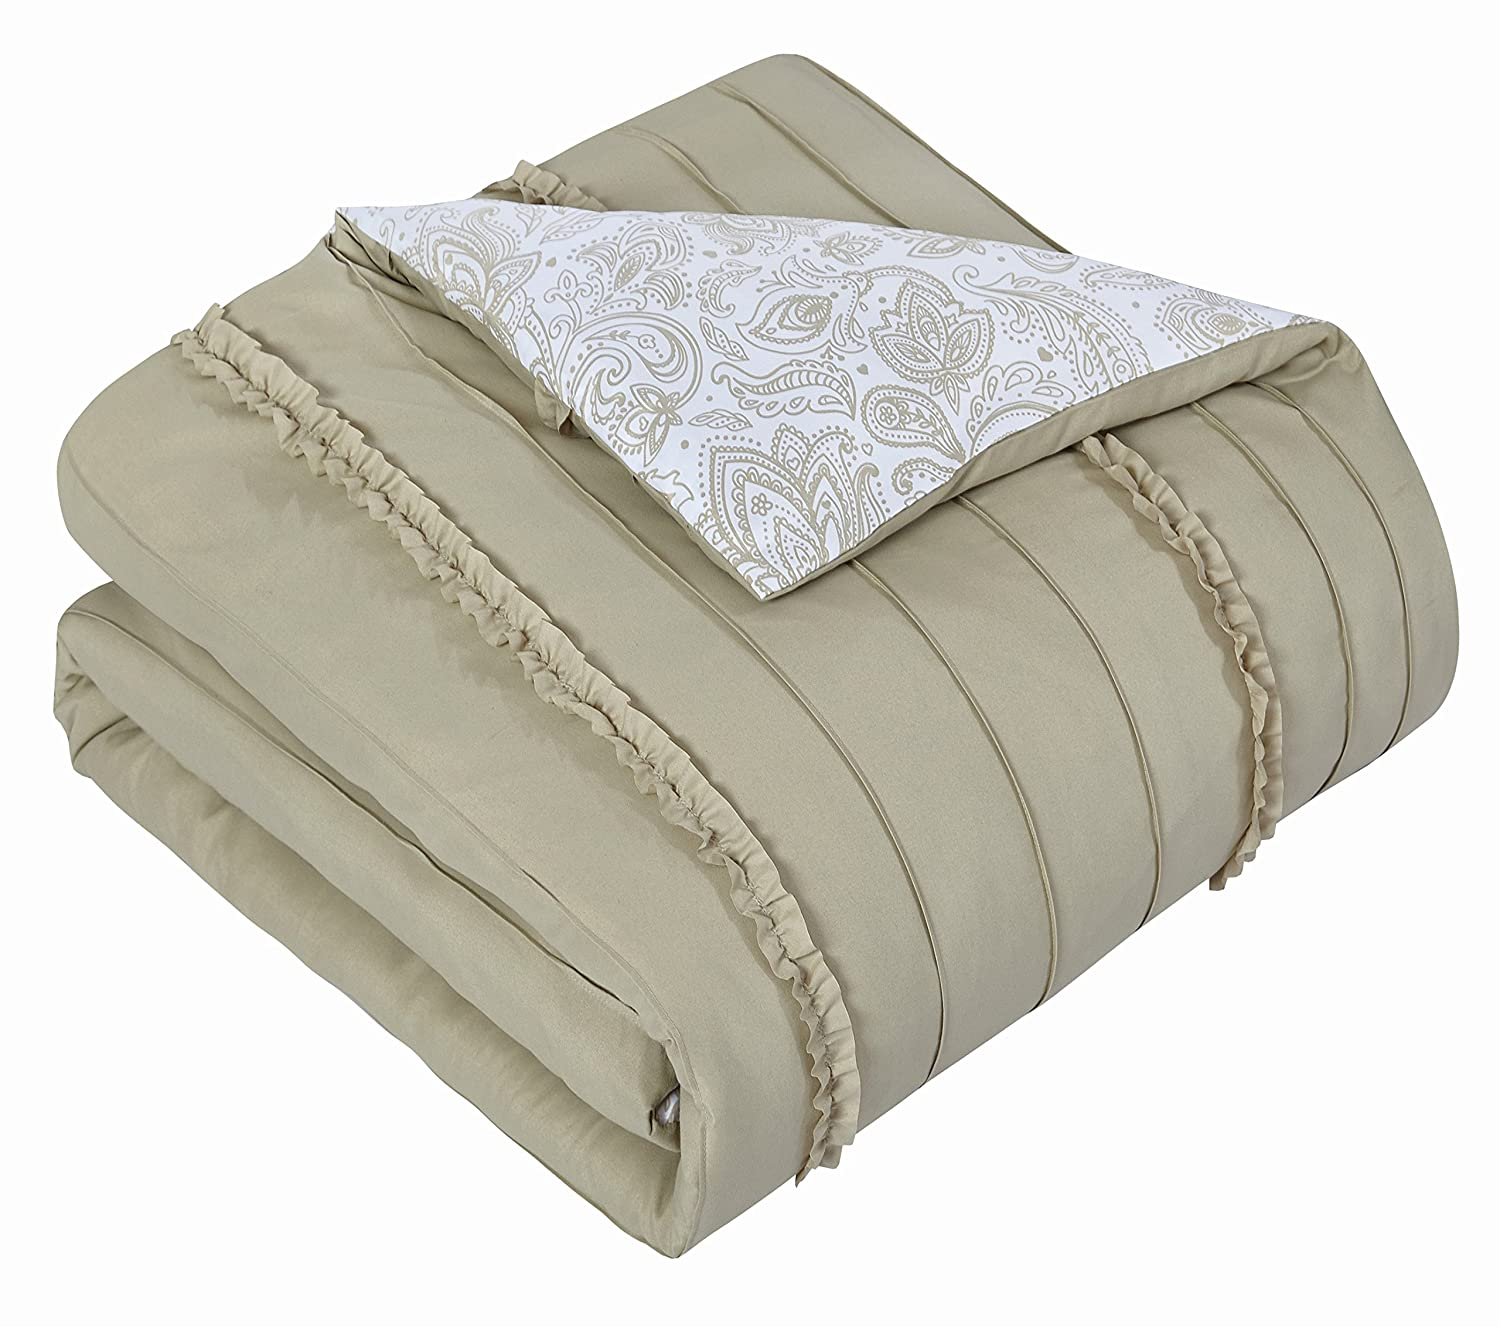 Chic Home 4 Piece Eliza Pleated//Ruffled Reversible Paisley Floral Print Duvet Cover Set Shams//Decorative Pillows King Beige DS2336-AN